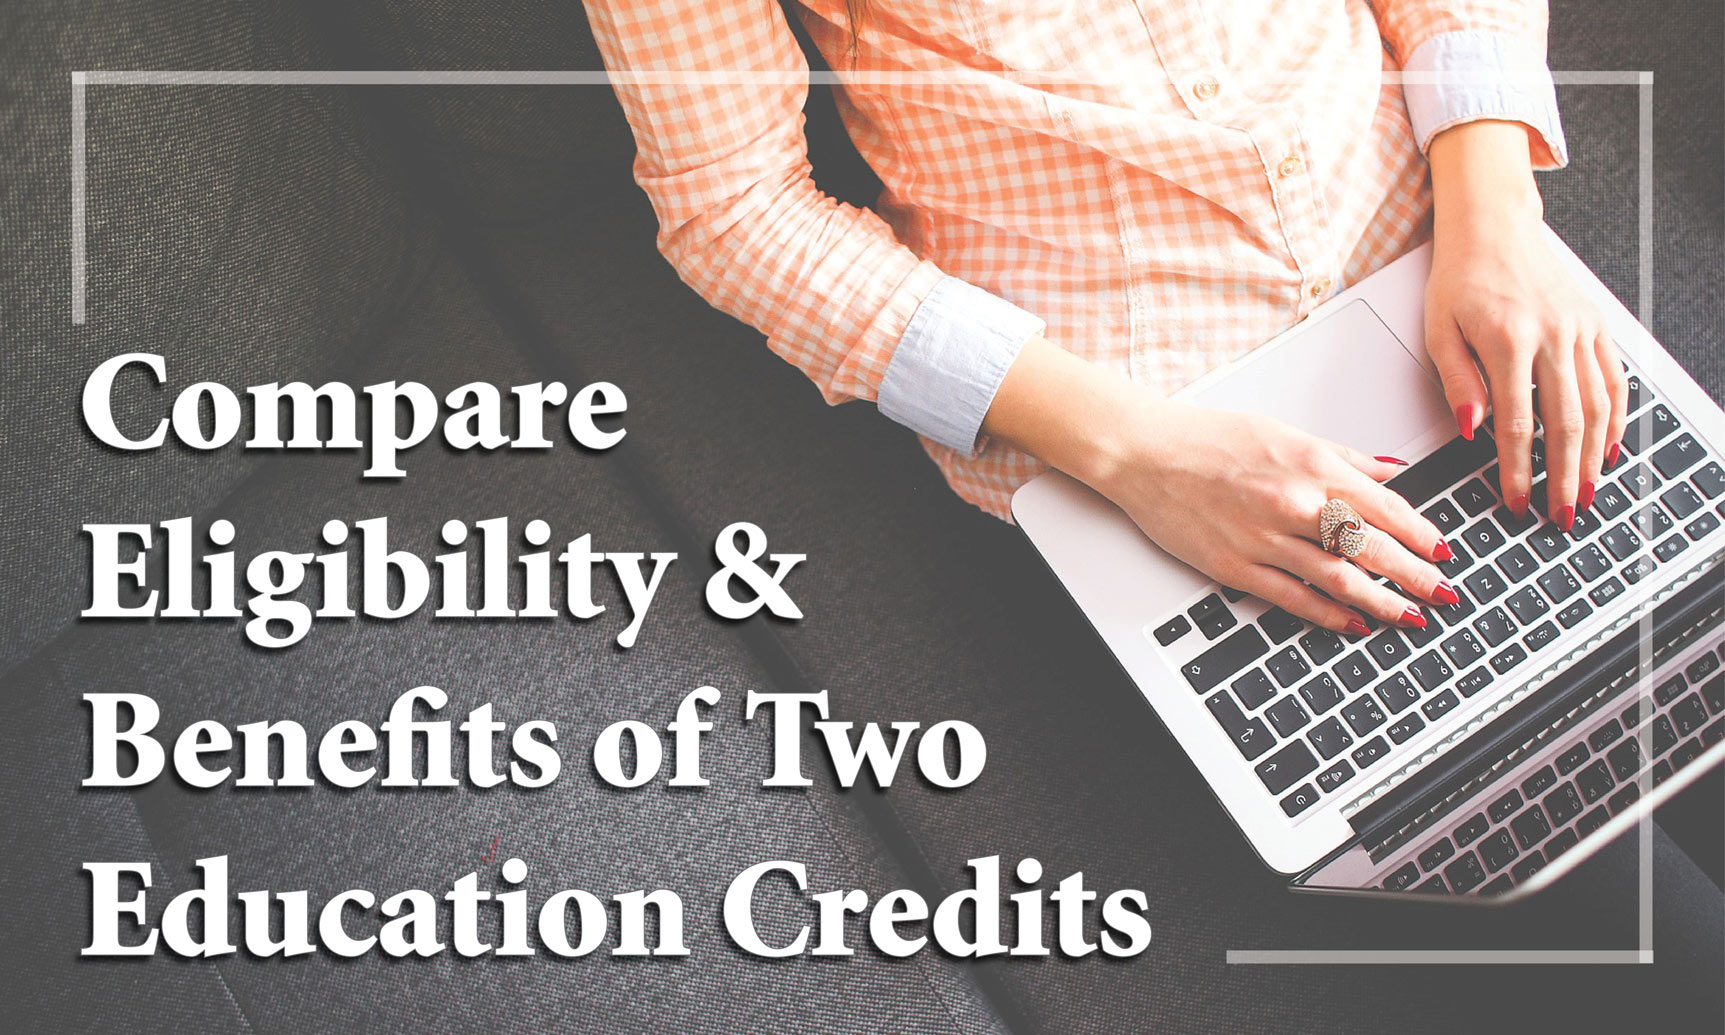 Benefits of two educations credits